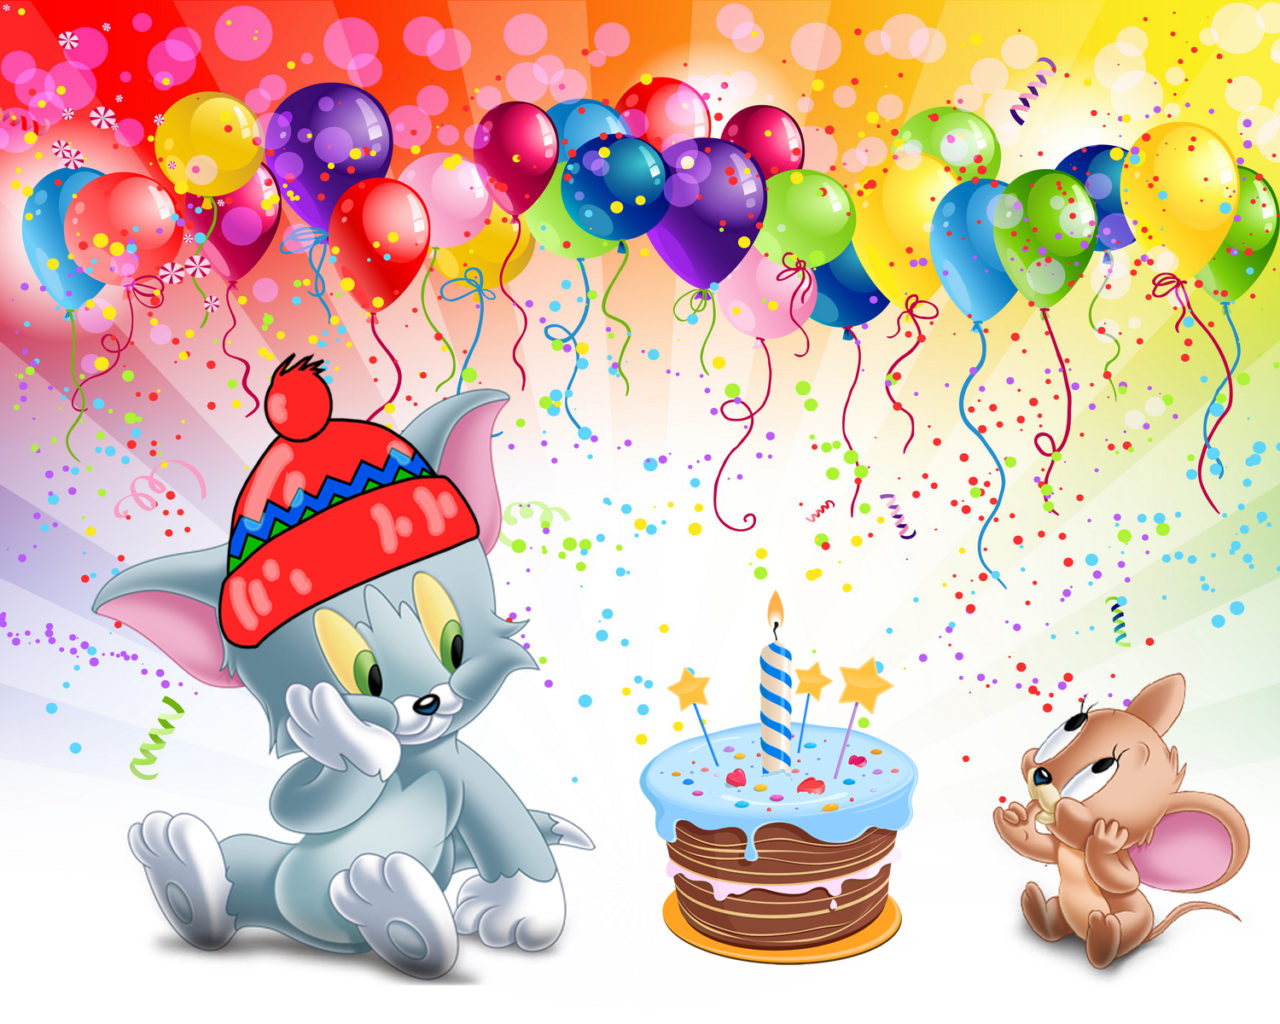 Hd Car Wallpapers For Mobile Free Download Tom And Jerry First Birthday Cake Desktop Hd Wallpaper For